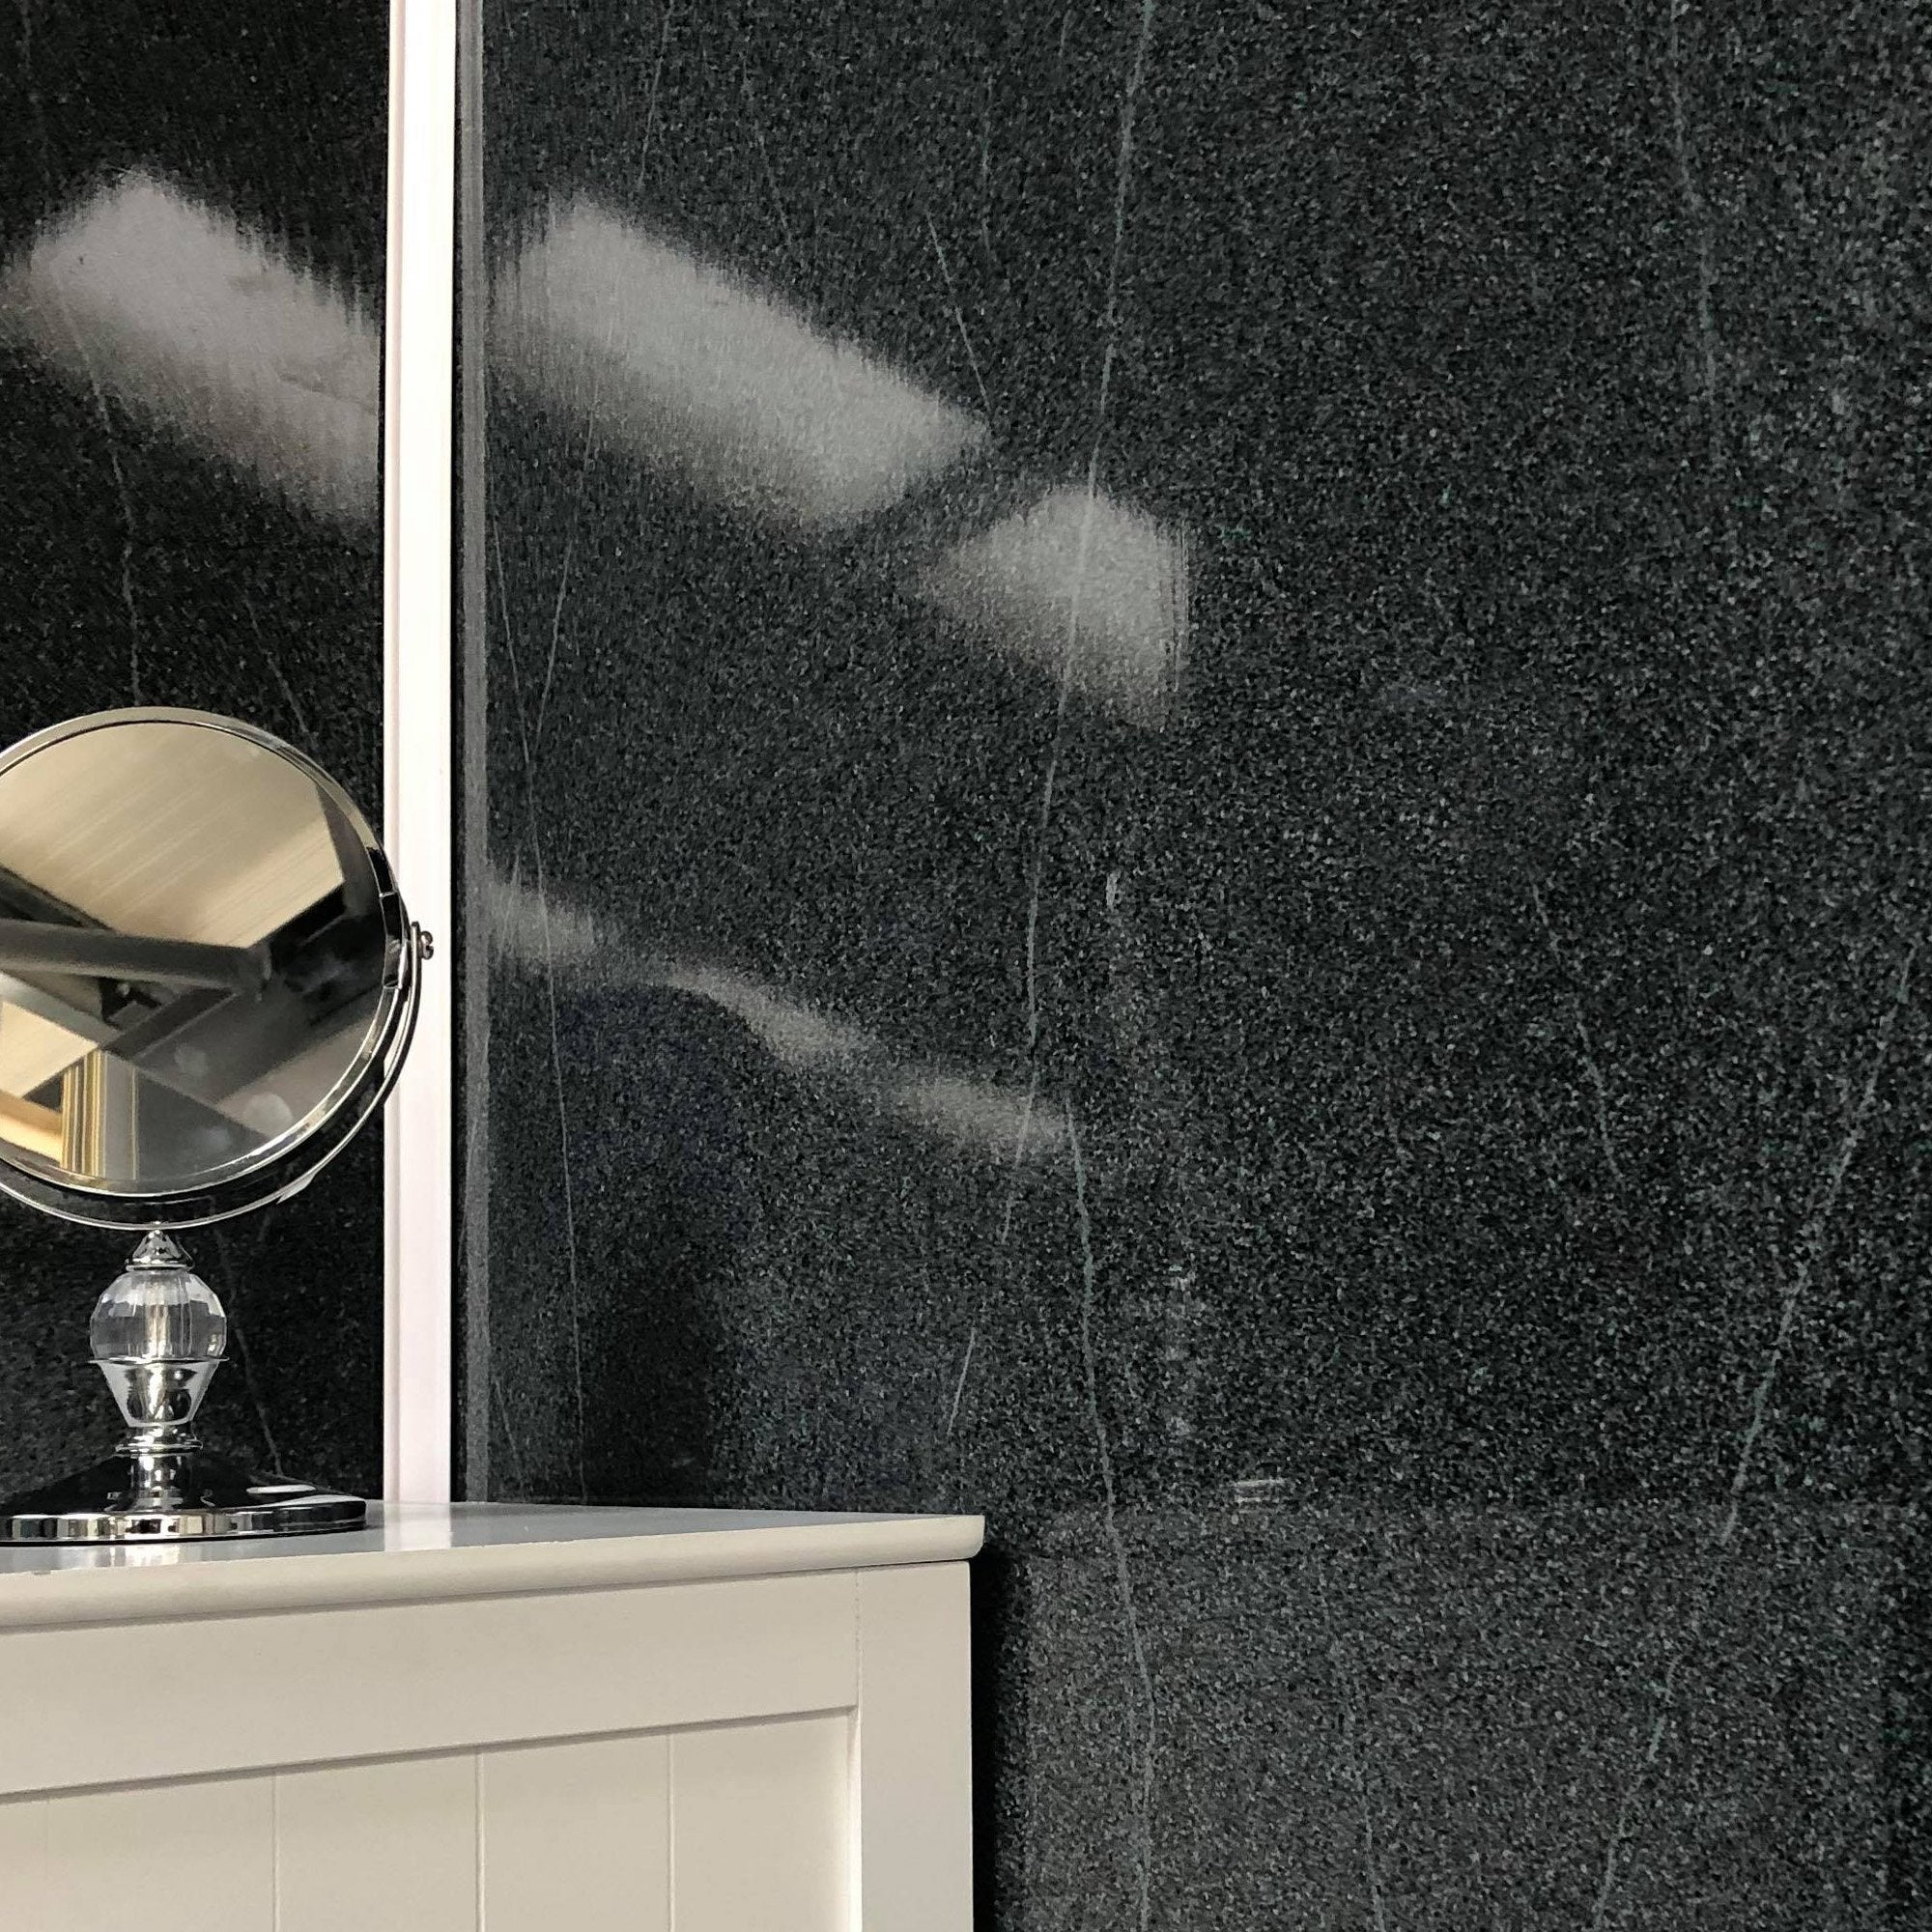 Grey Granite Large 10mm Thick Bathroom Wall PVC Cladding Panels - Claddtech